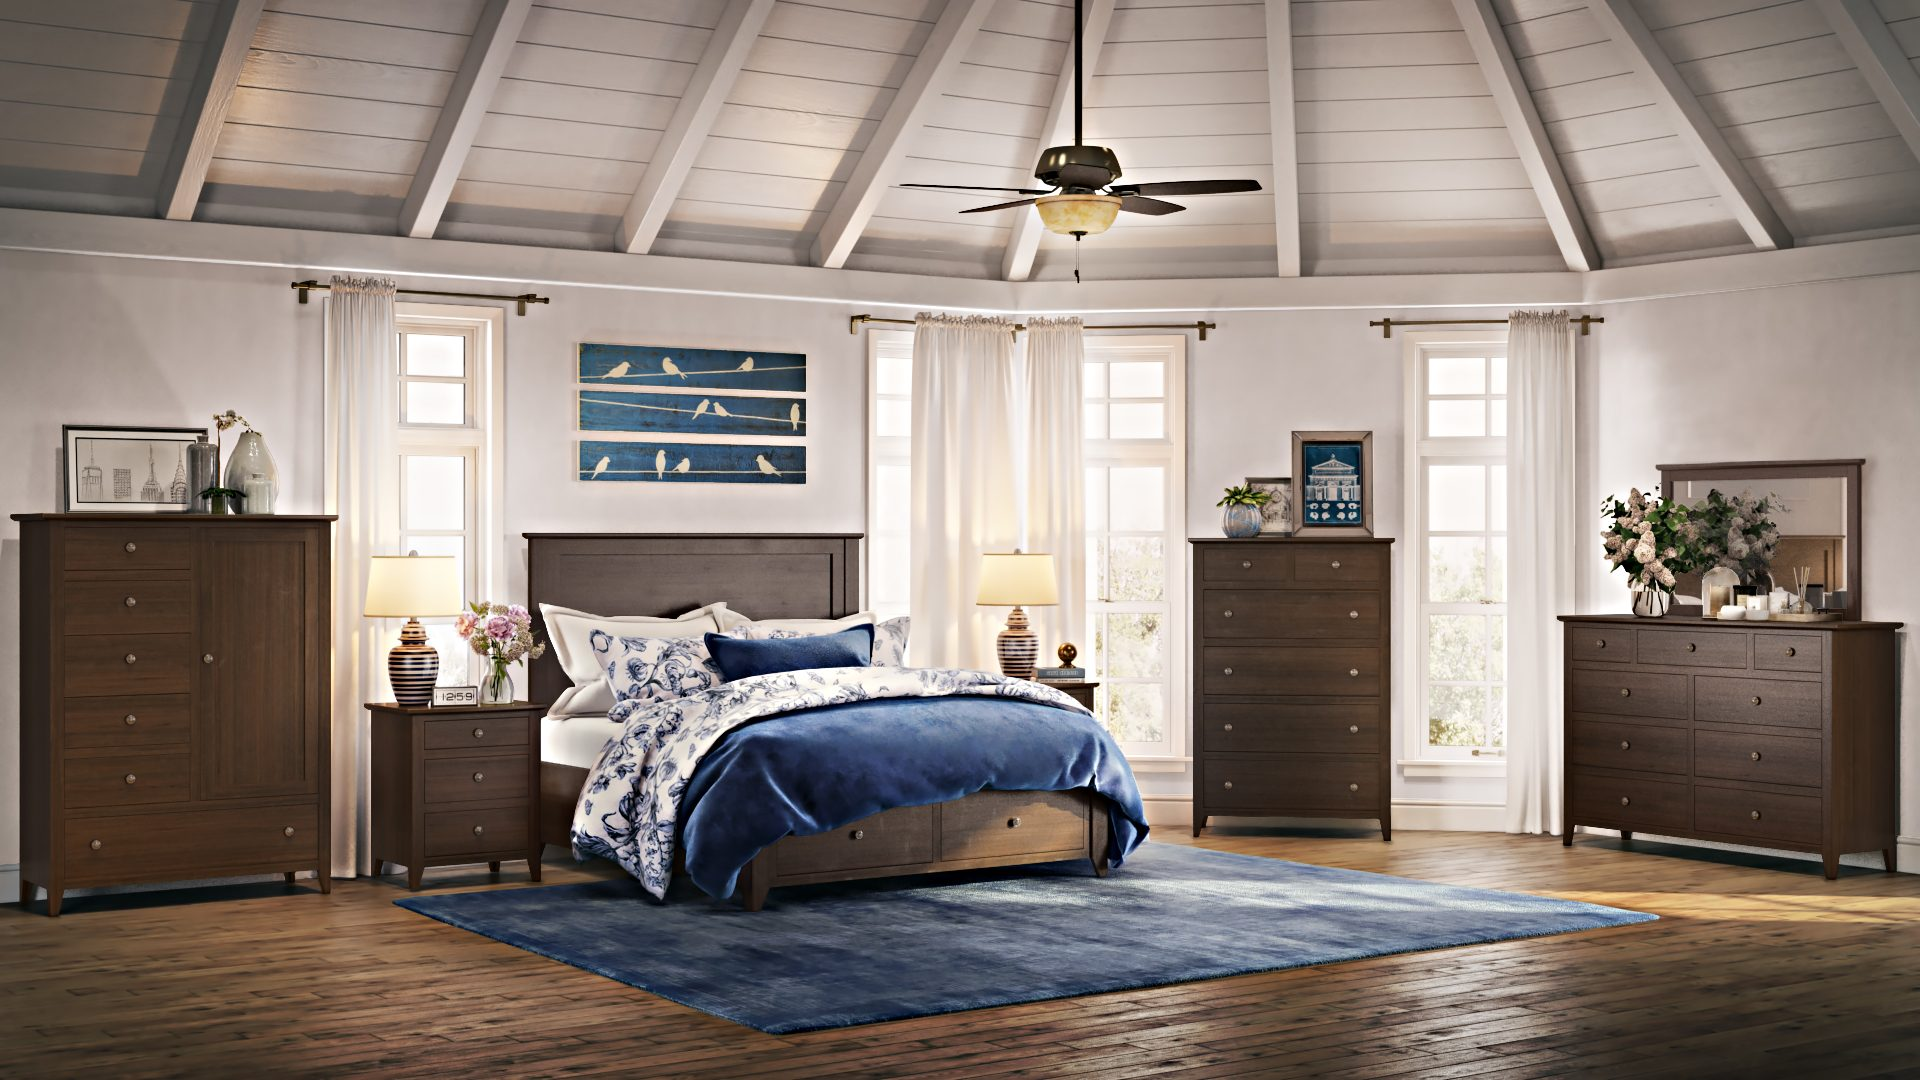 Bedroom Furniture 3D Rendering for Product Ads